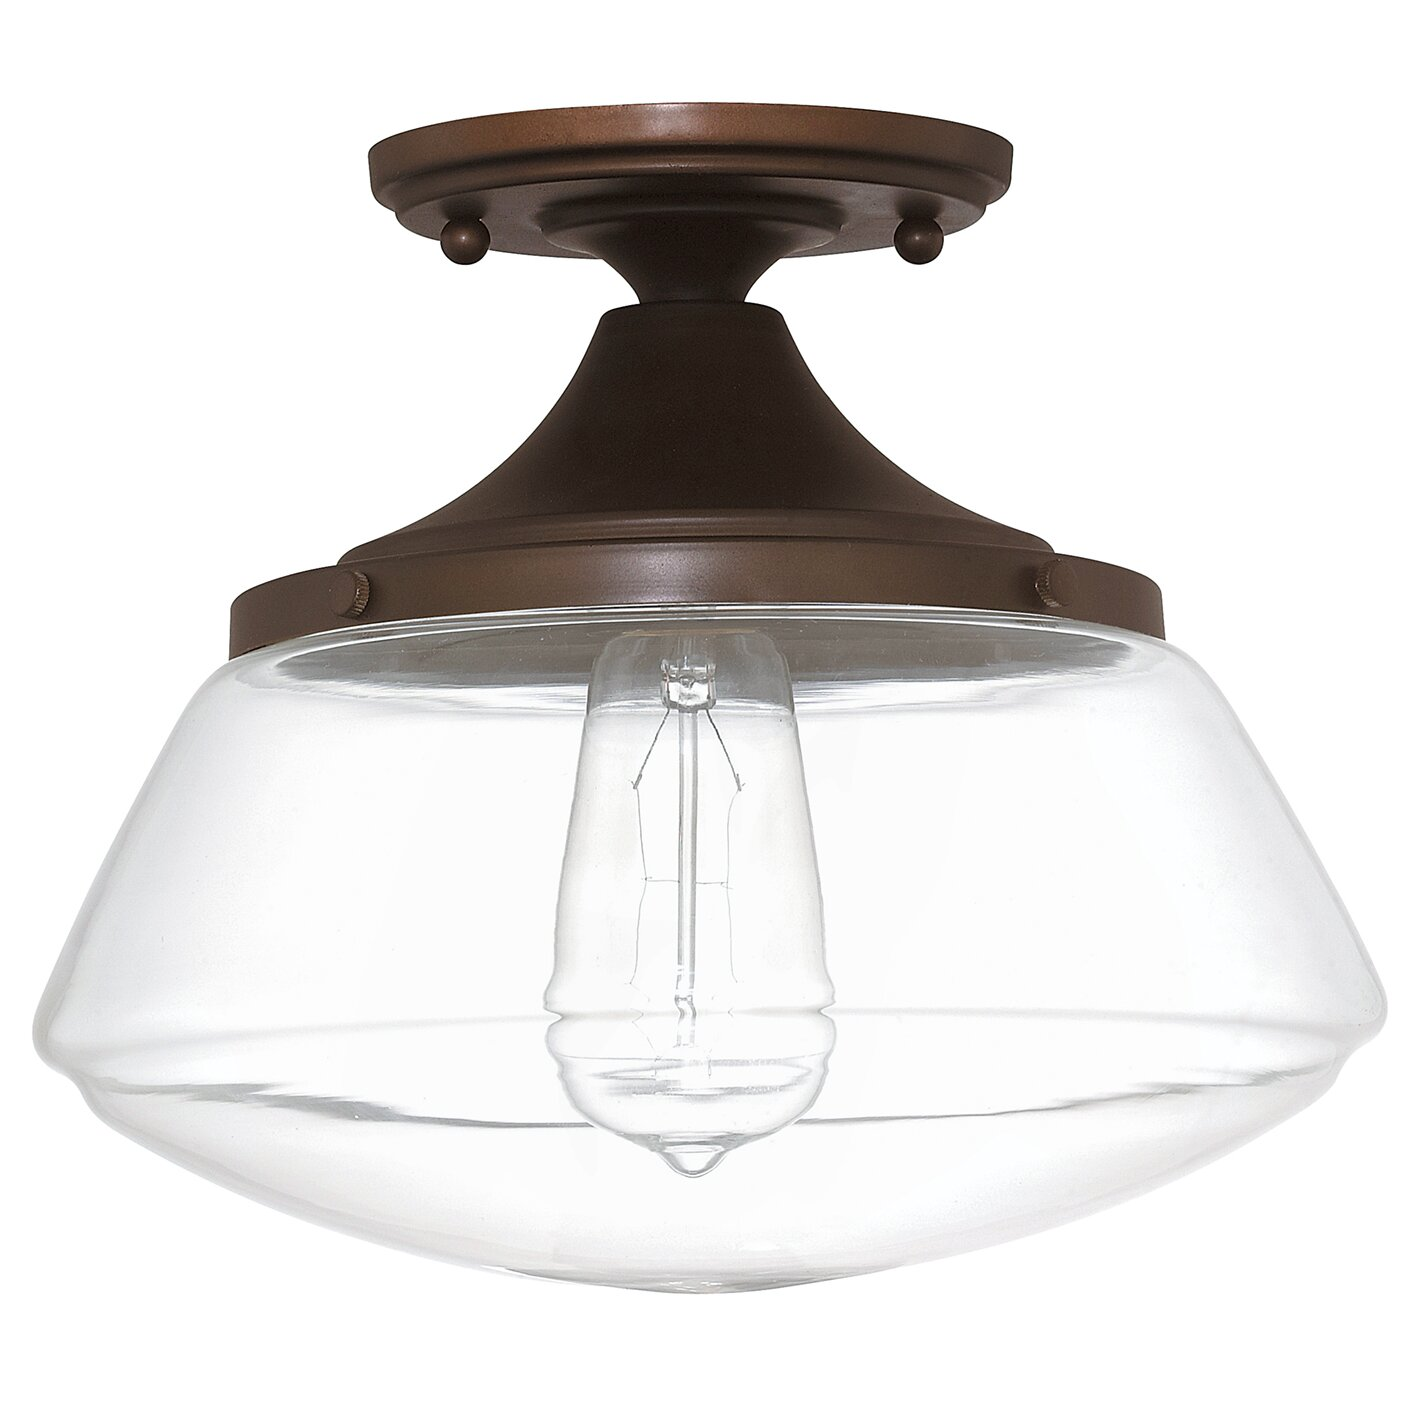 Flush Mount Kitchen Ceiling Light Fixtures Flush Mount Lighting Youll Love Wayfair